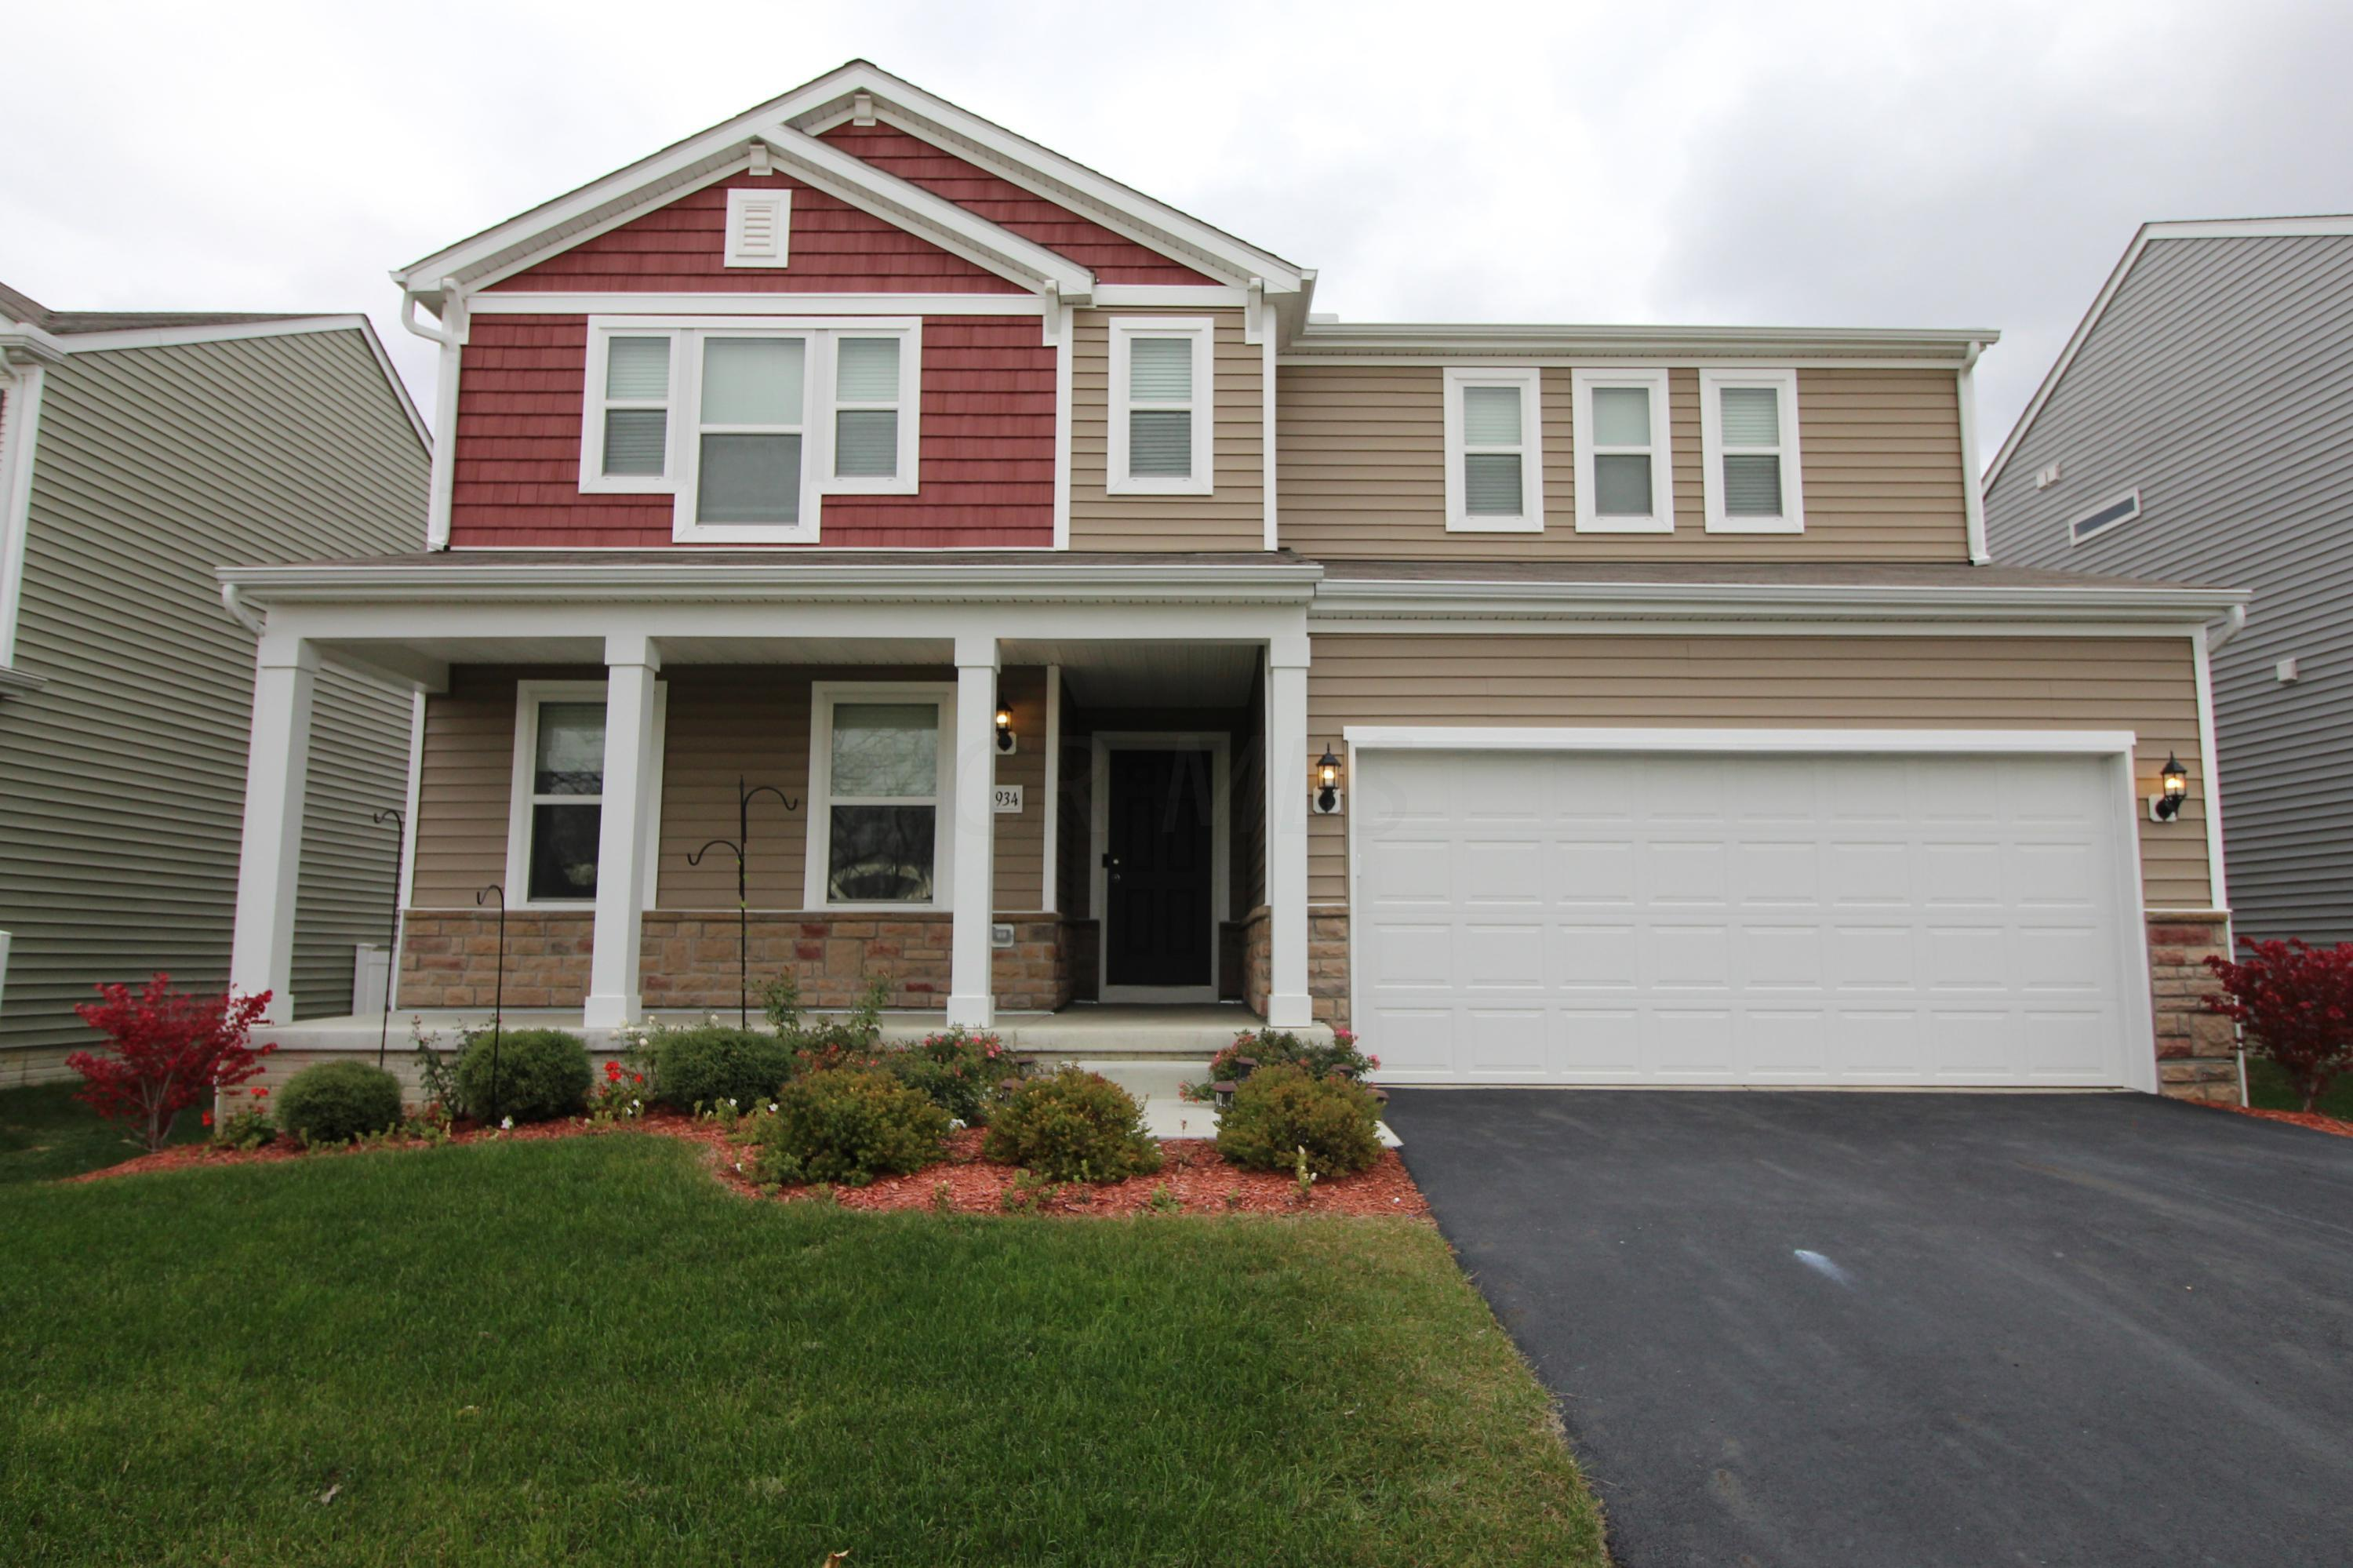 Photo of 5934 Tully Cross Drive, Galloway, OH 43119